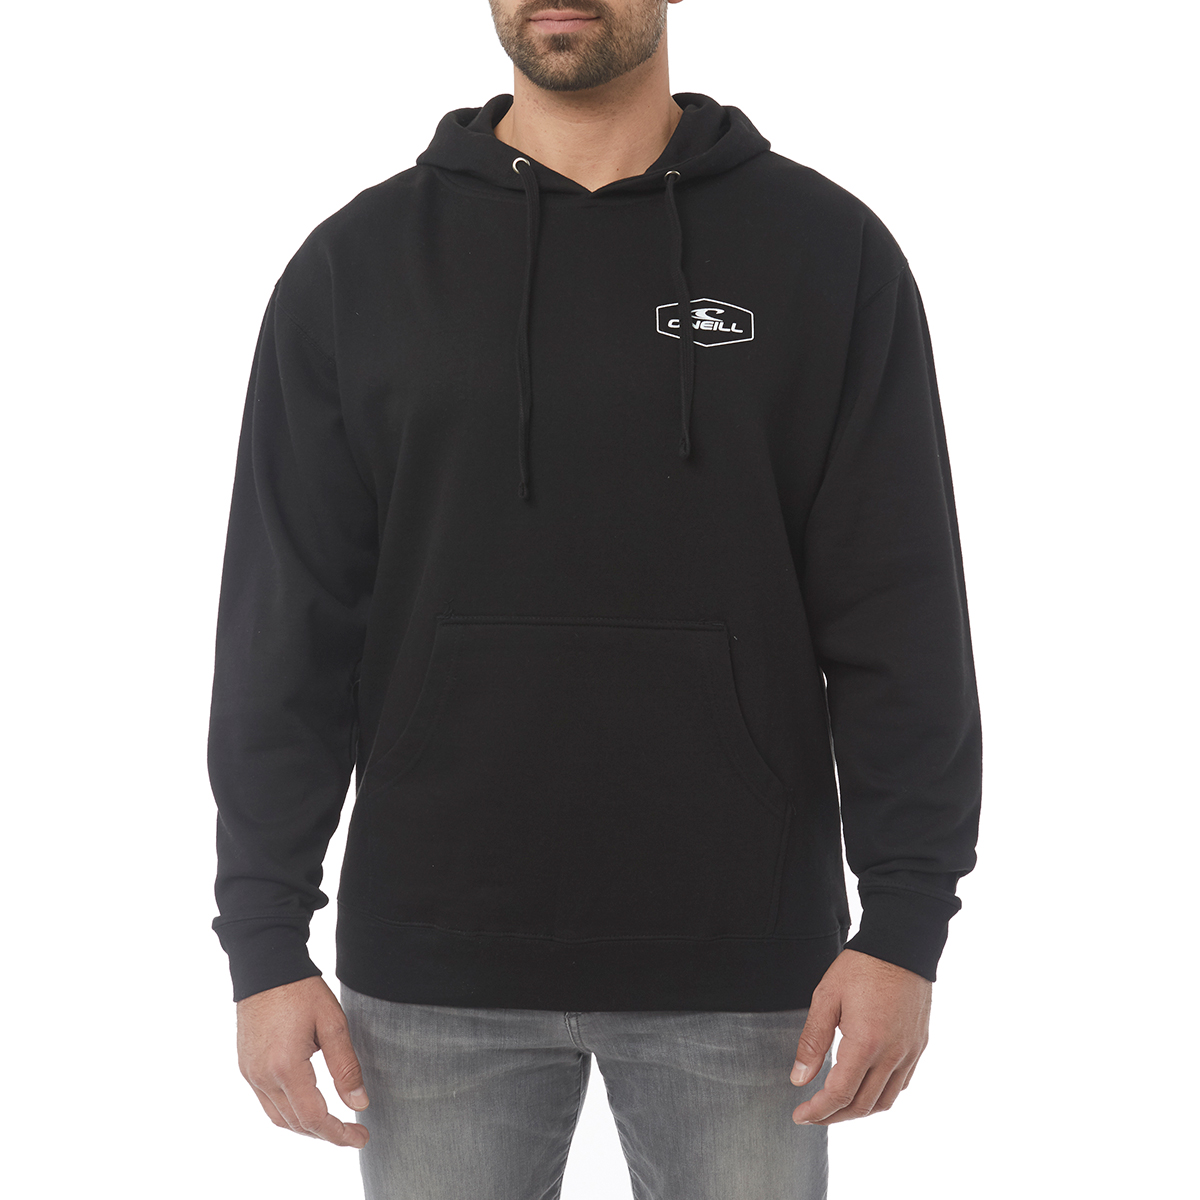 O'neill Guys' Trucker Fleece Pullover Hoodie - Black, XL